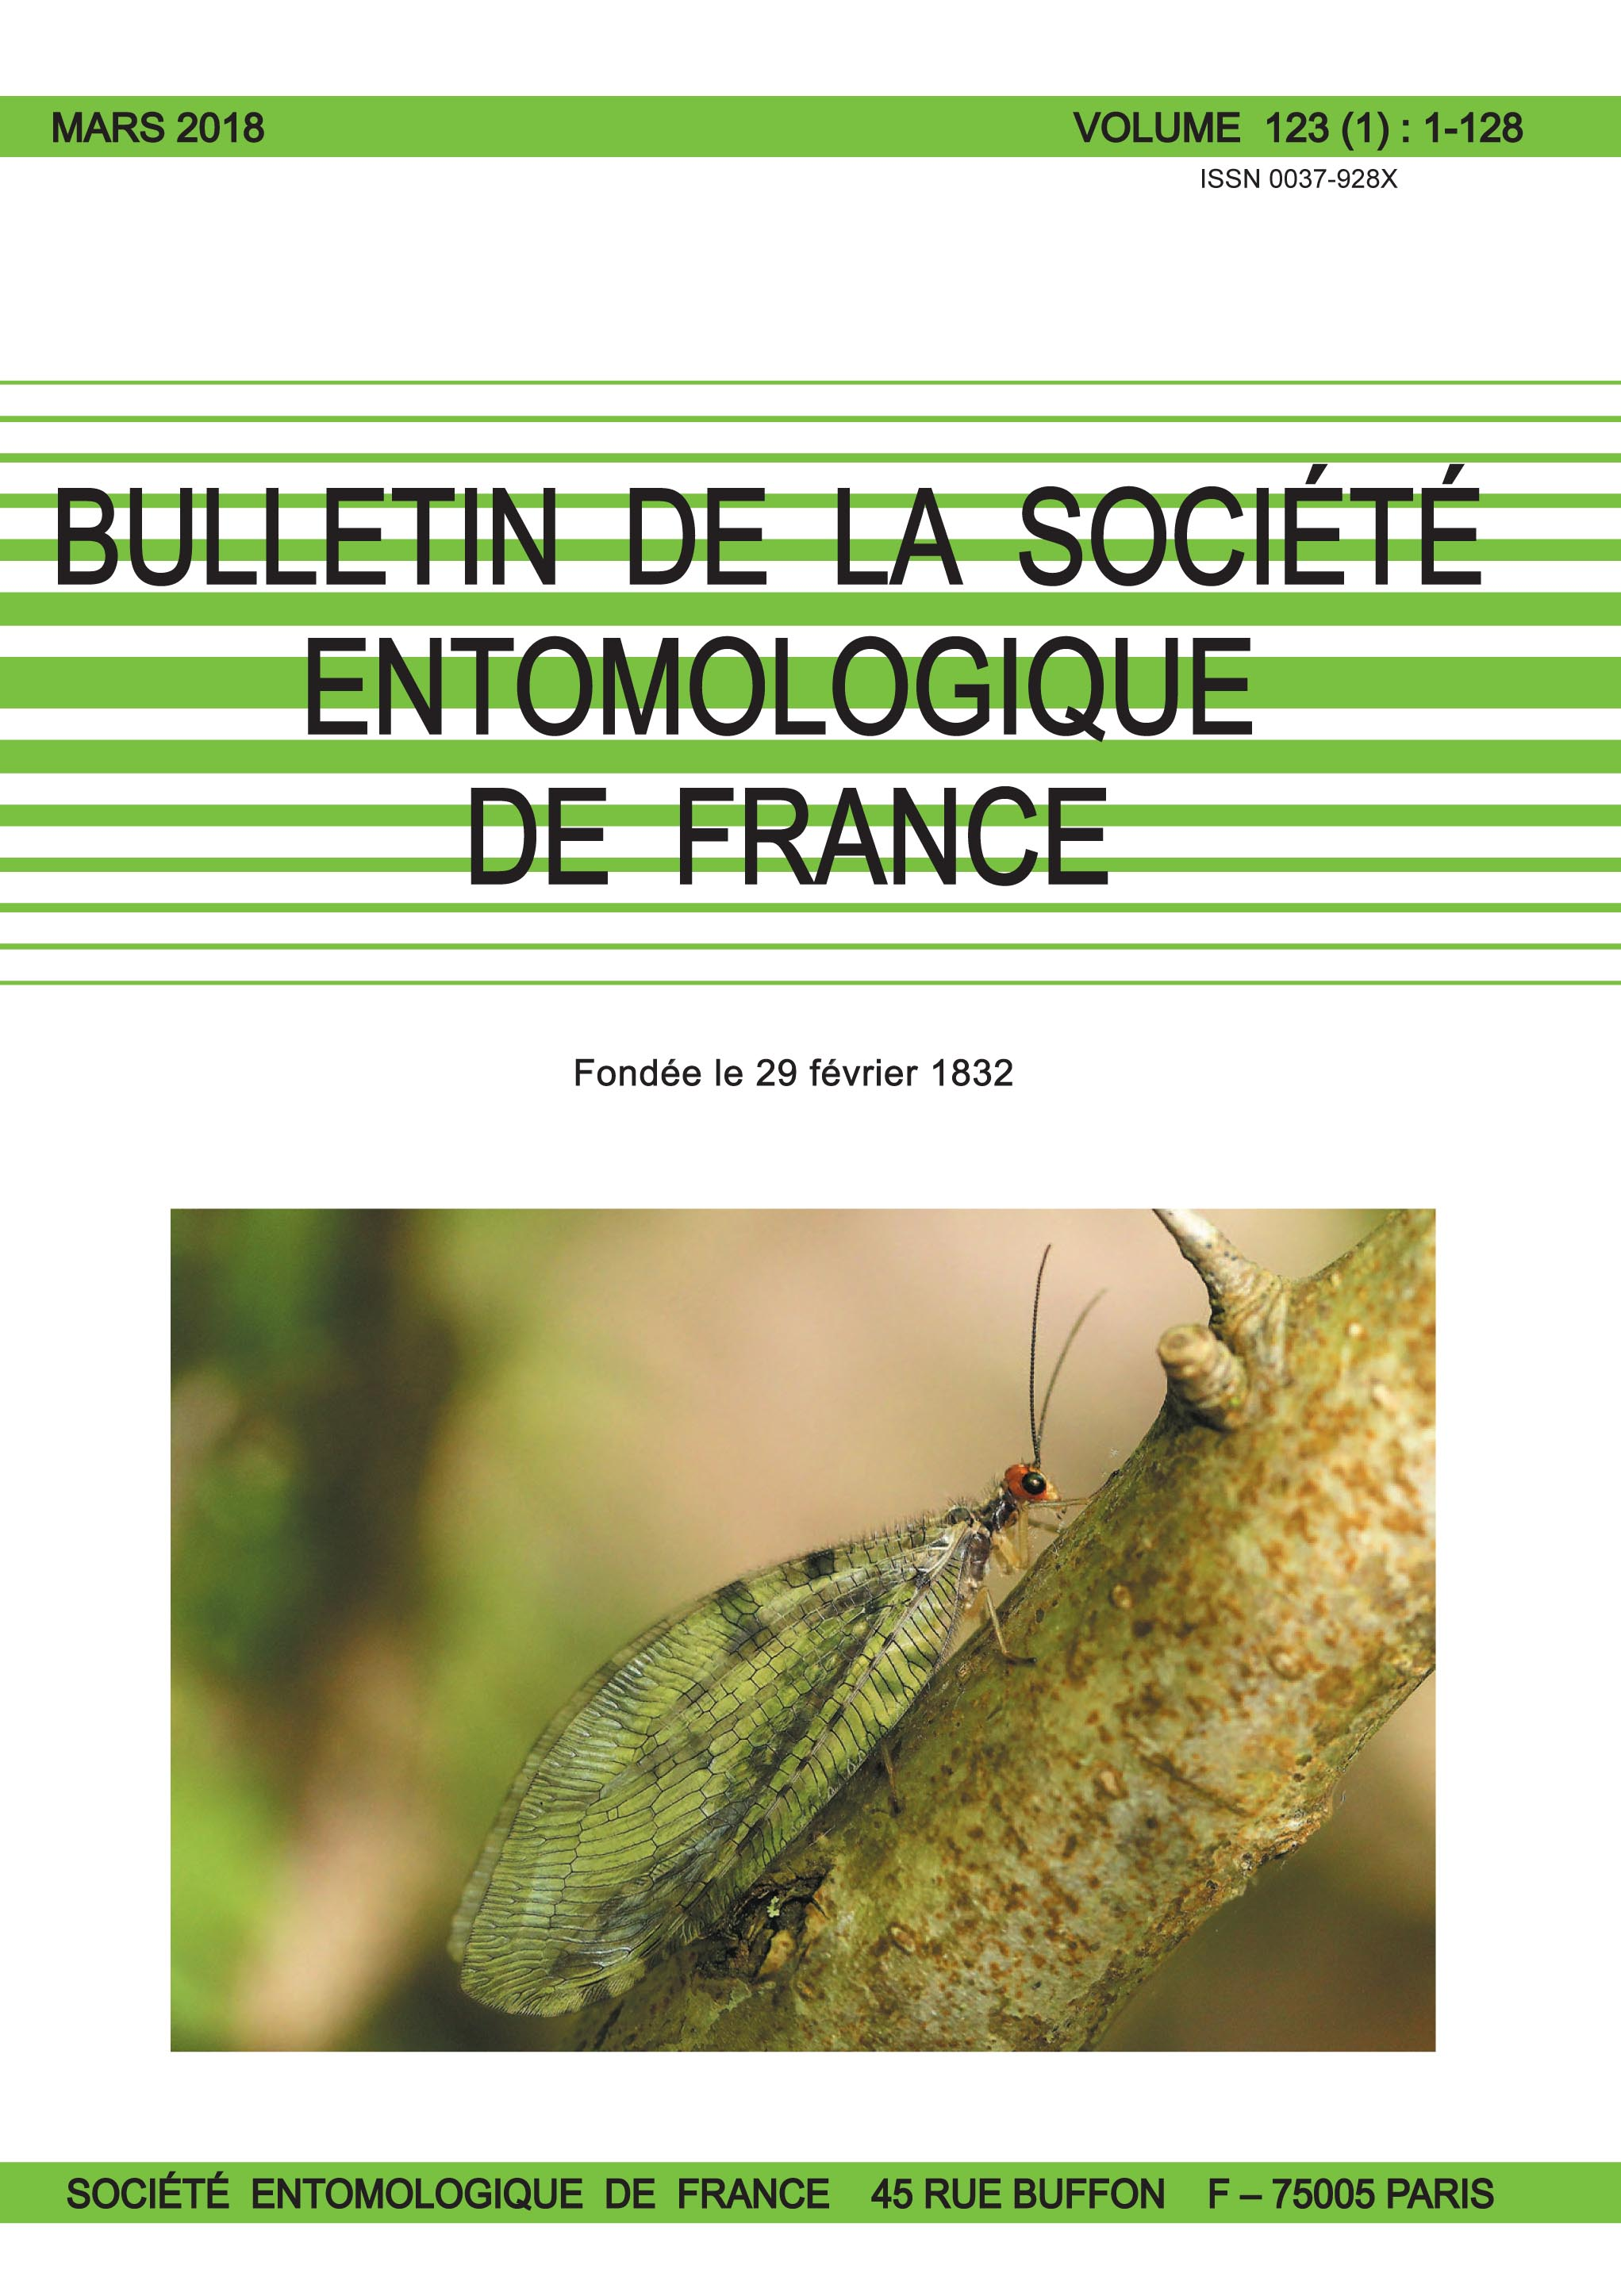 BULLETIN DE LA SOCIETE ENTOMOLOGIQUE DE FRANCE